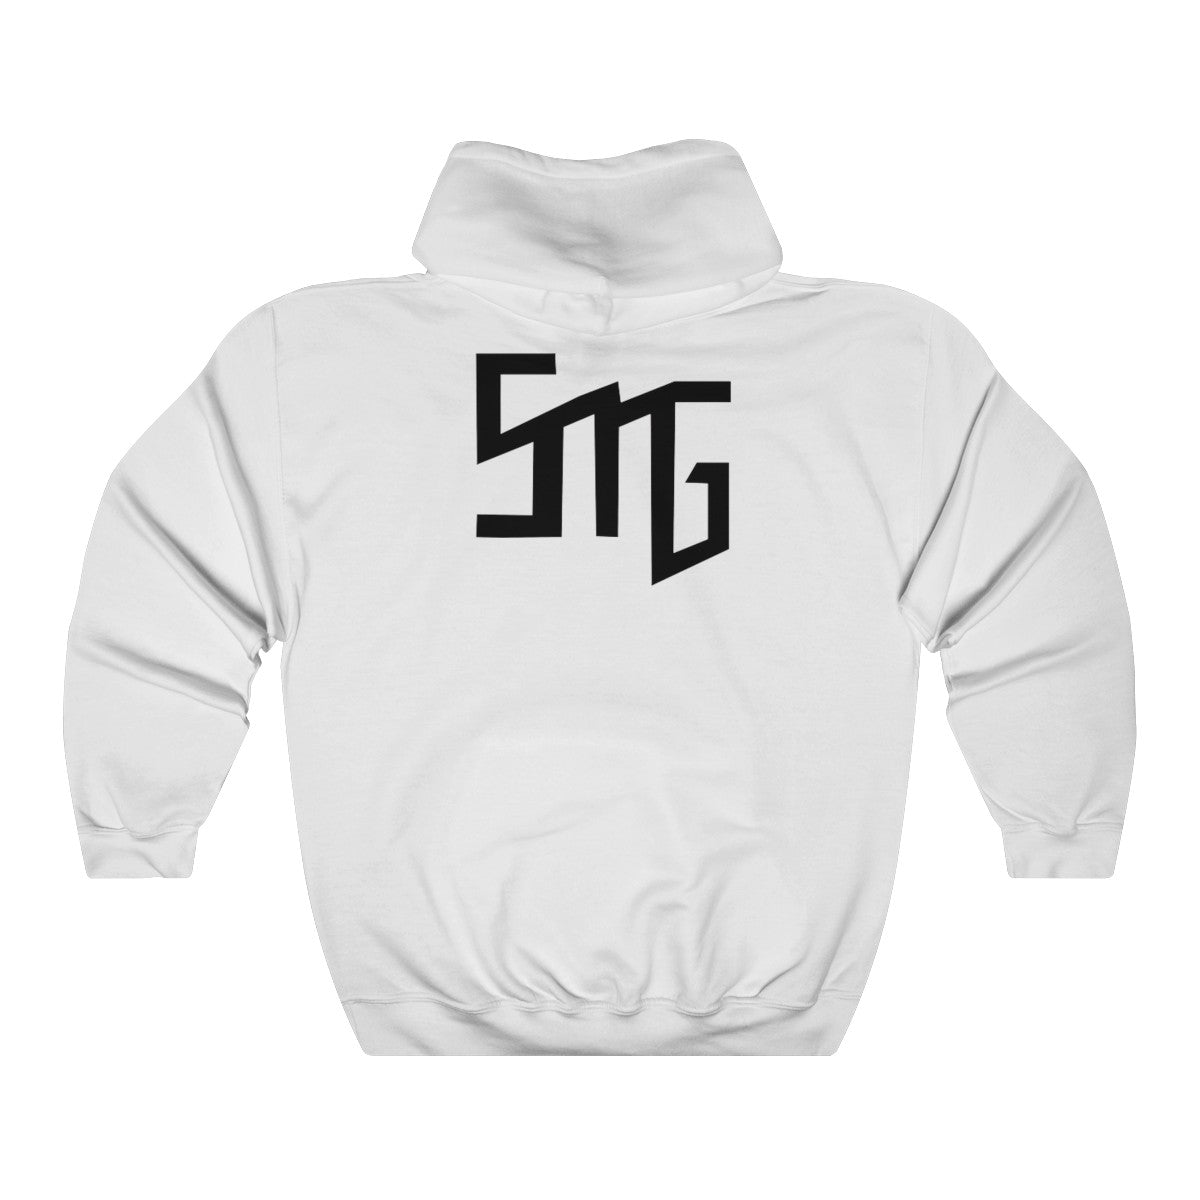 Elly Elz Hooded Sweatshirt